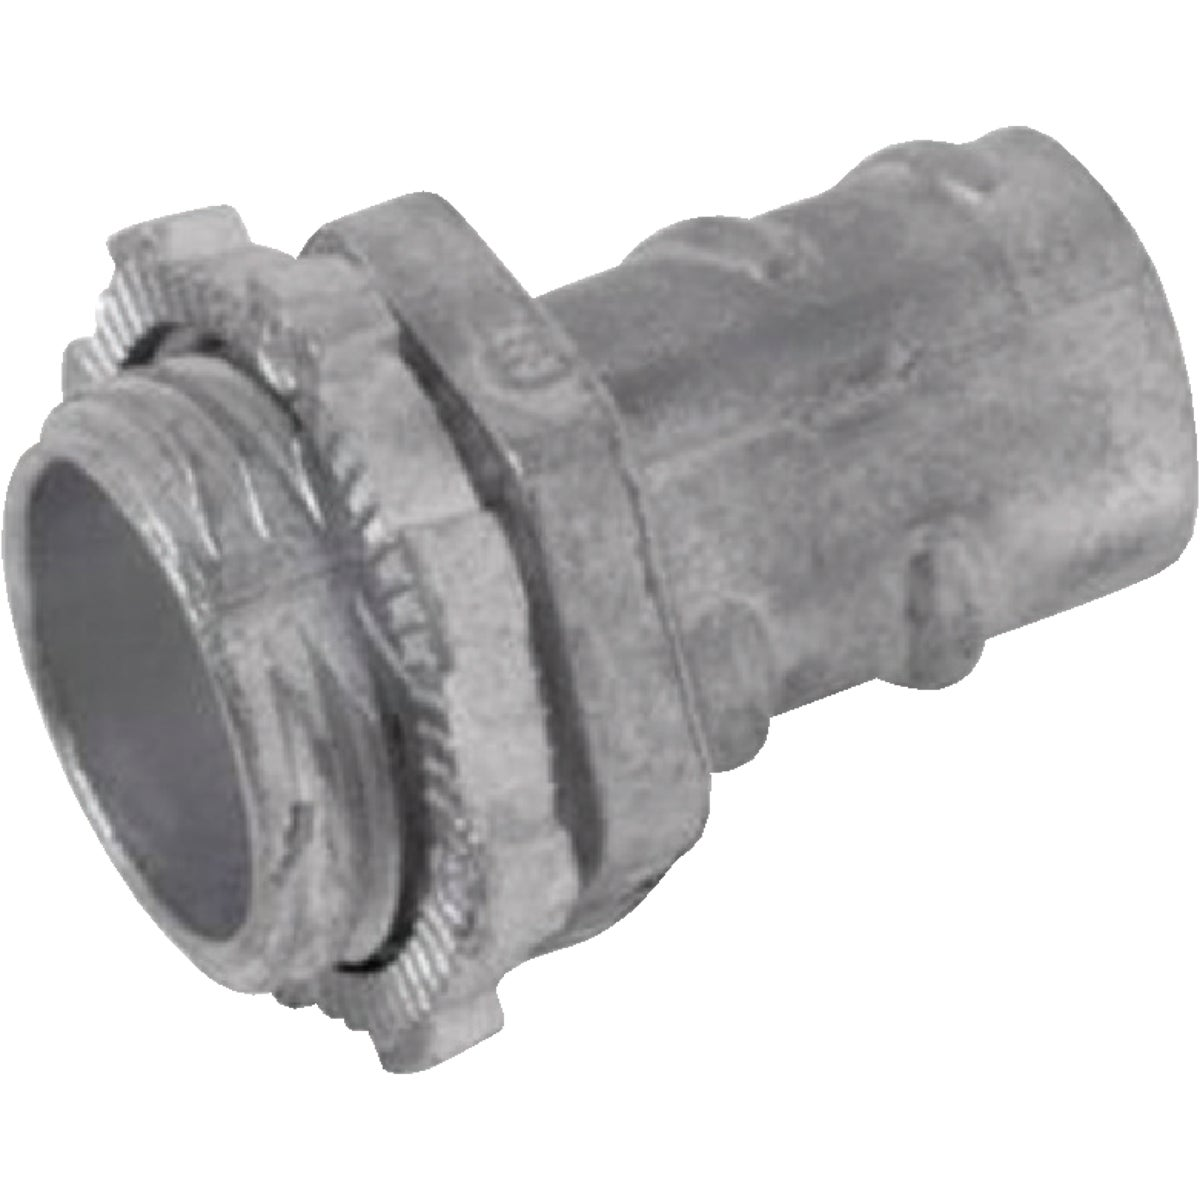 "3/4"" FLEX CONNECTOR - XC2422 by Thomas & Betts"